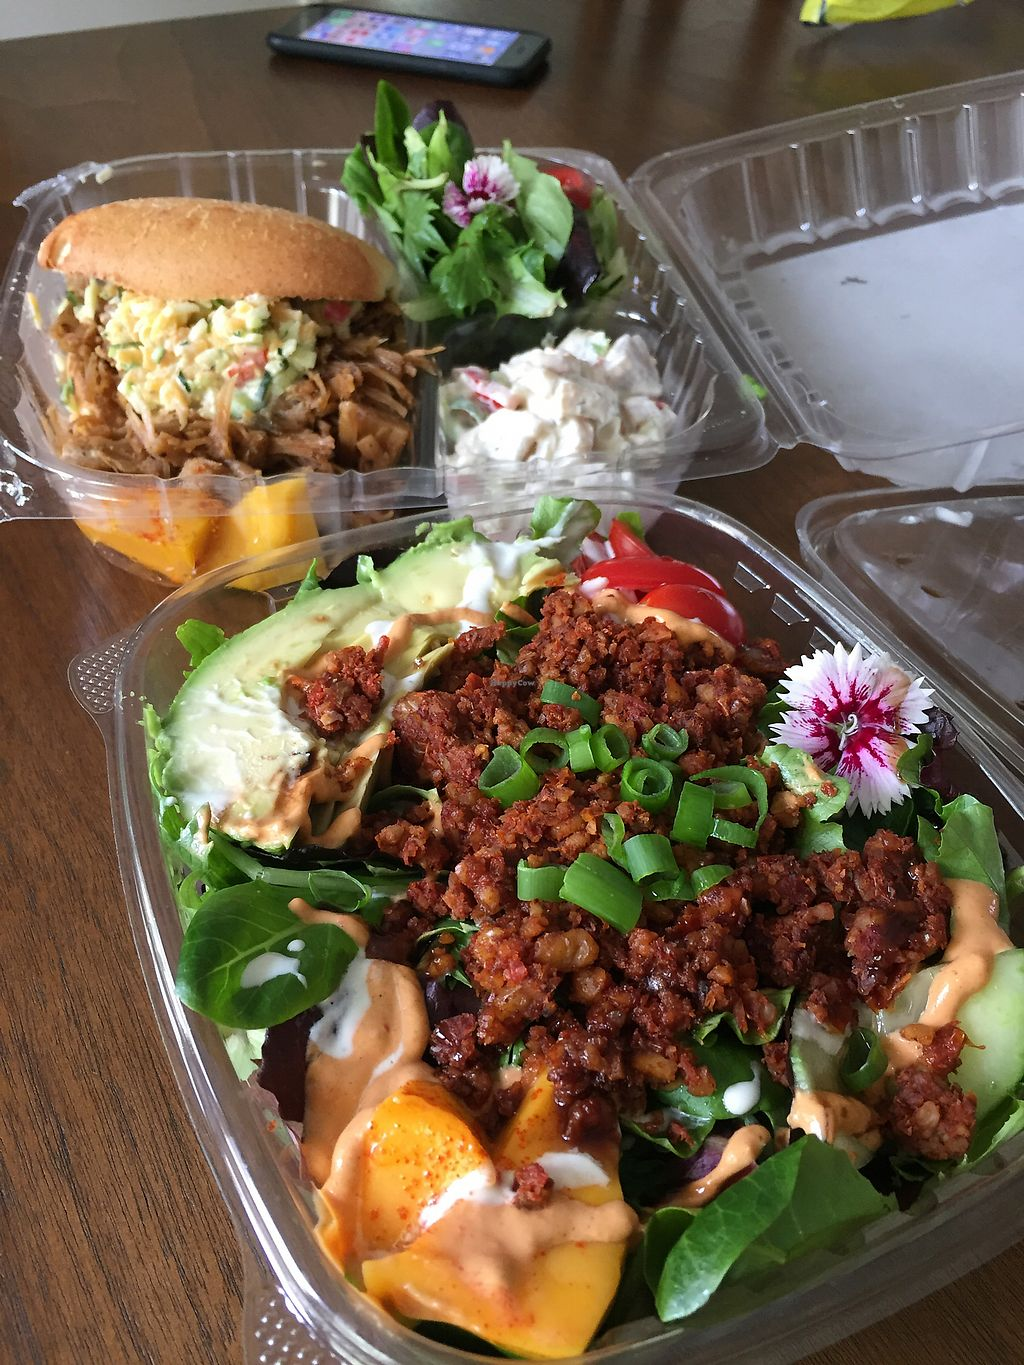 "Photo of Recipe Oak Cliff  by <a href=""/members/profile/ChristinaIsBlue"">ChristinaIsBlue</a> <br/>Taco Salad <br/> August 18, 2017  - <a href='/contact/abuse/image/96694/294084'>Report</a>"